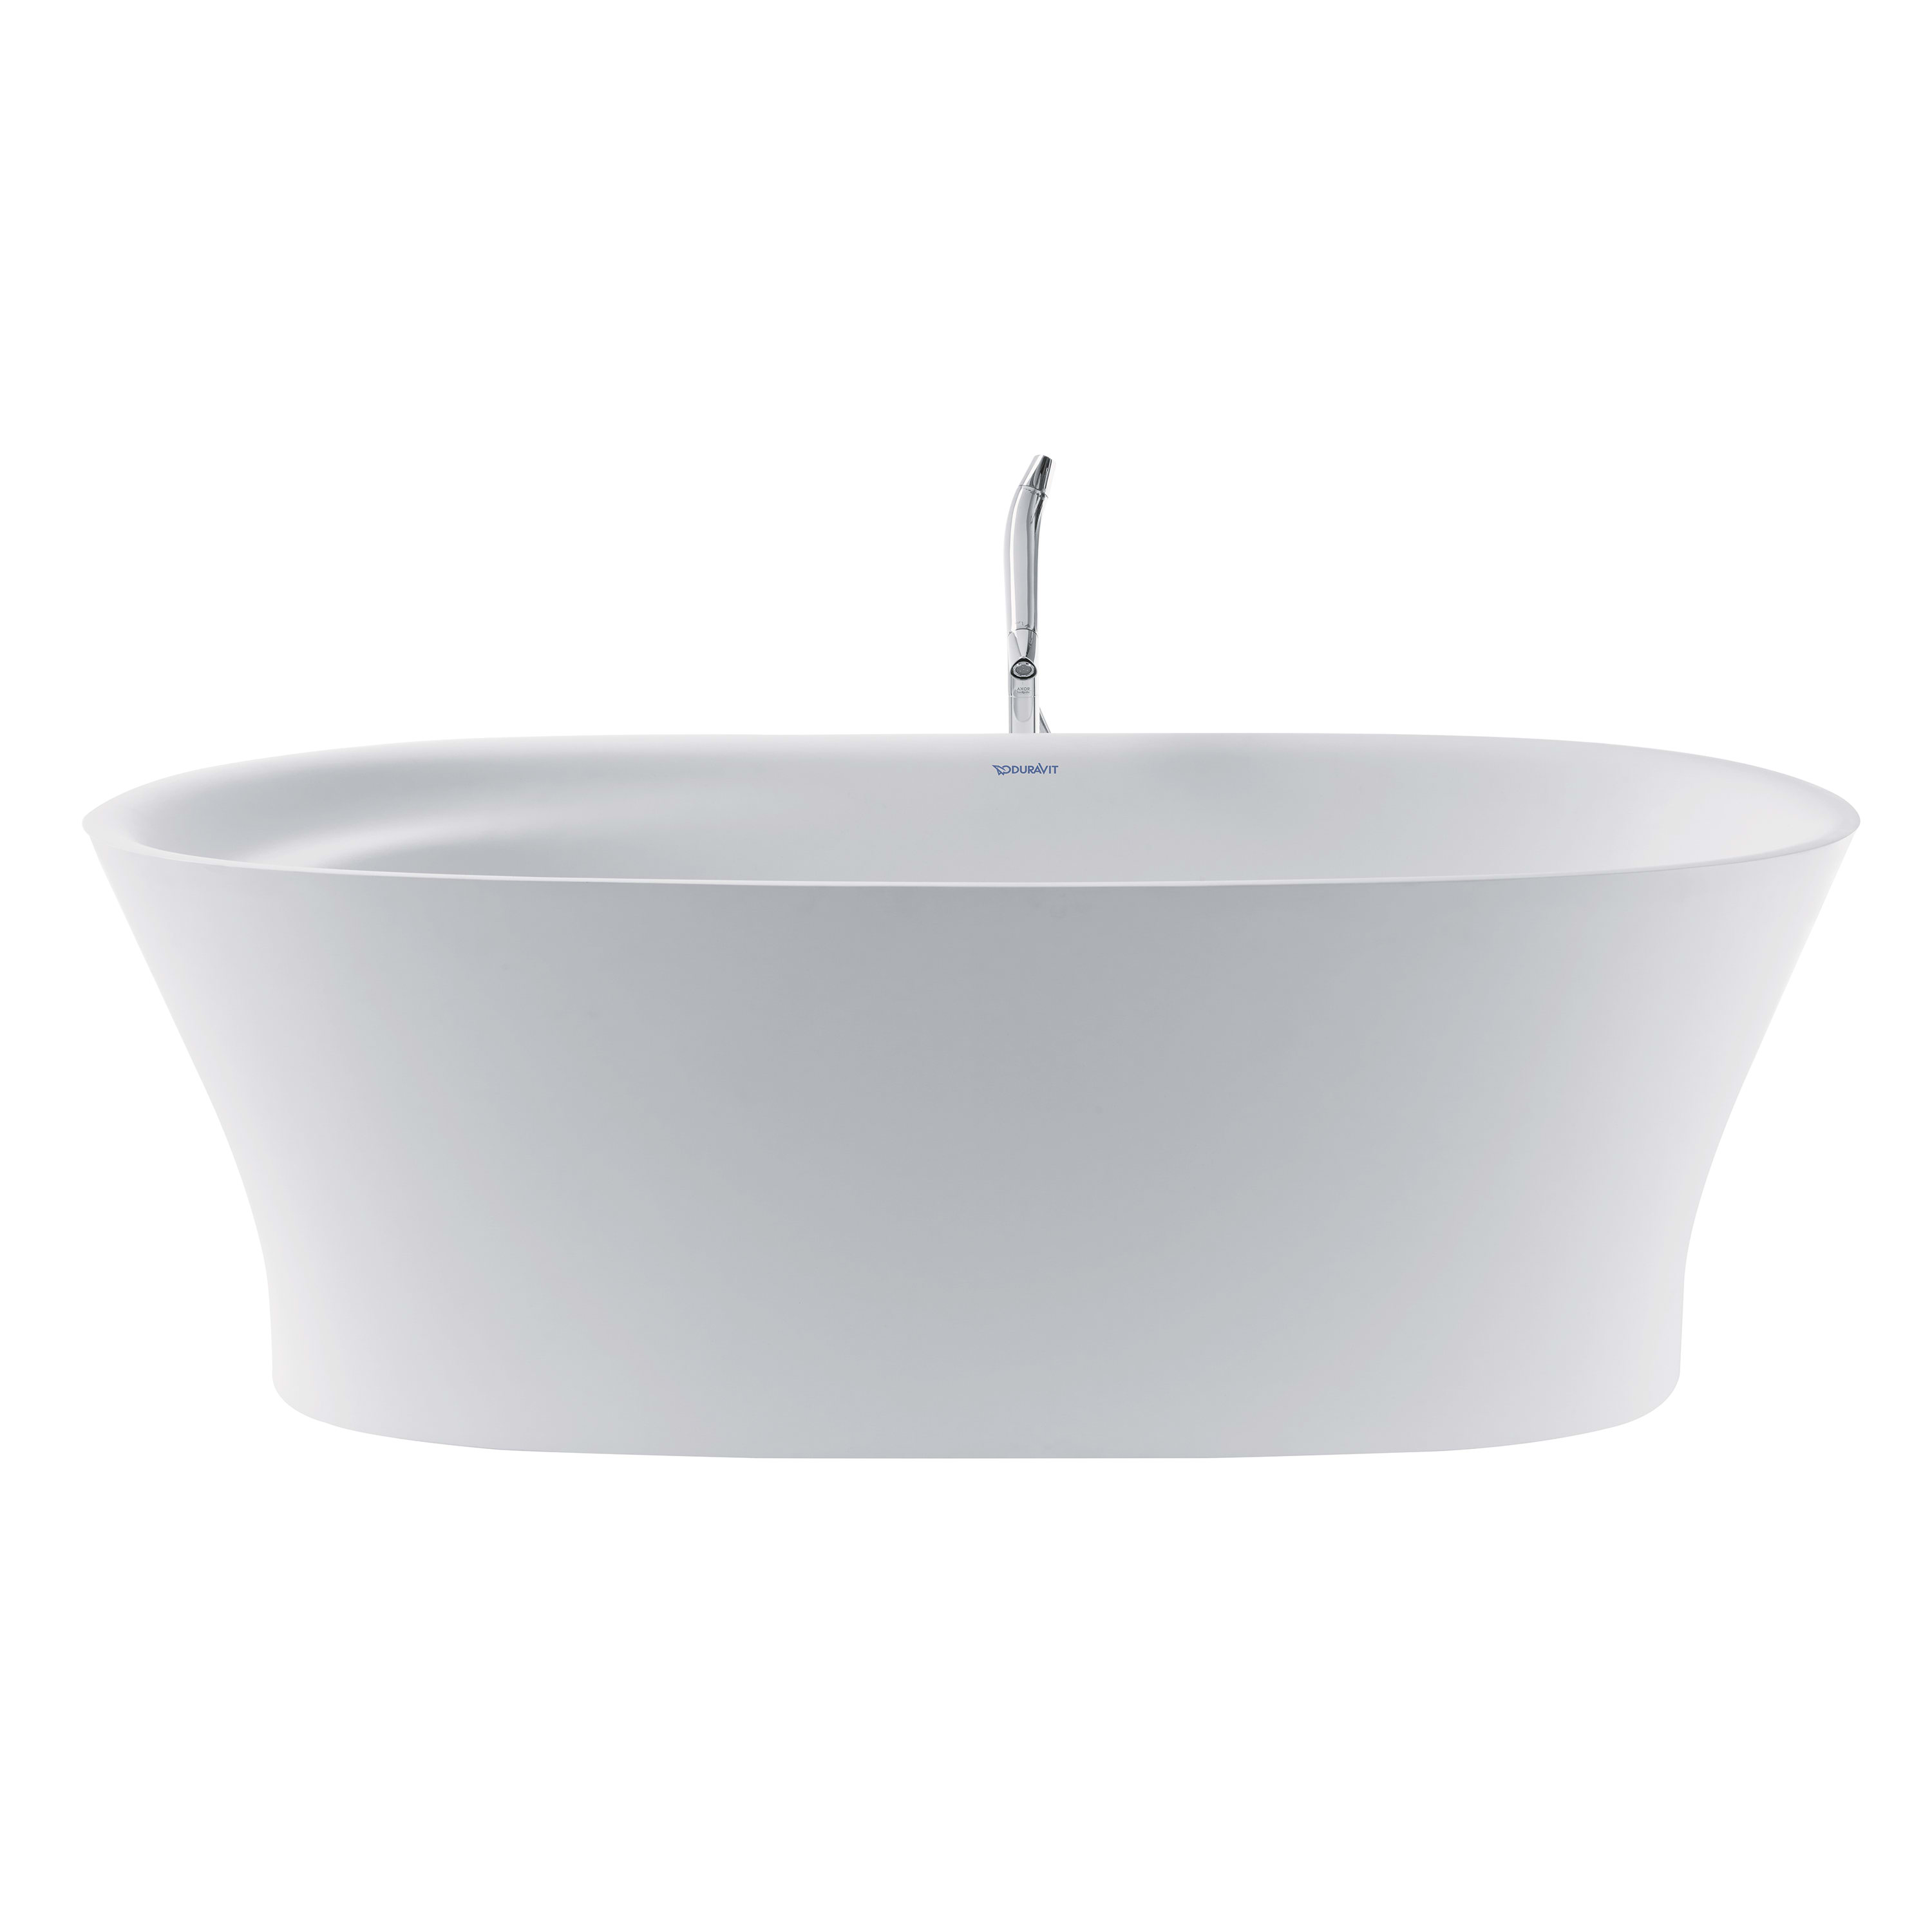 Duravit 700330000000090 Cape Cod Freestanding Soaker Tub ...